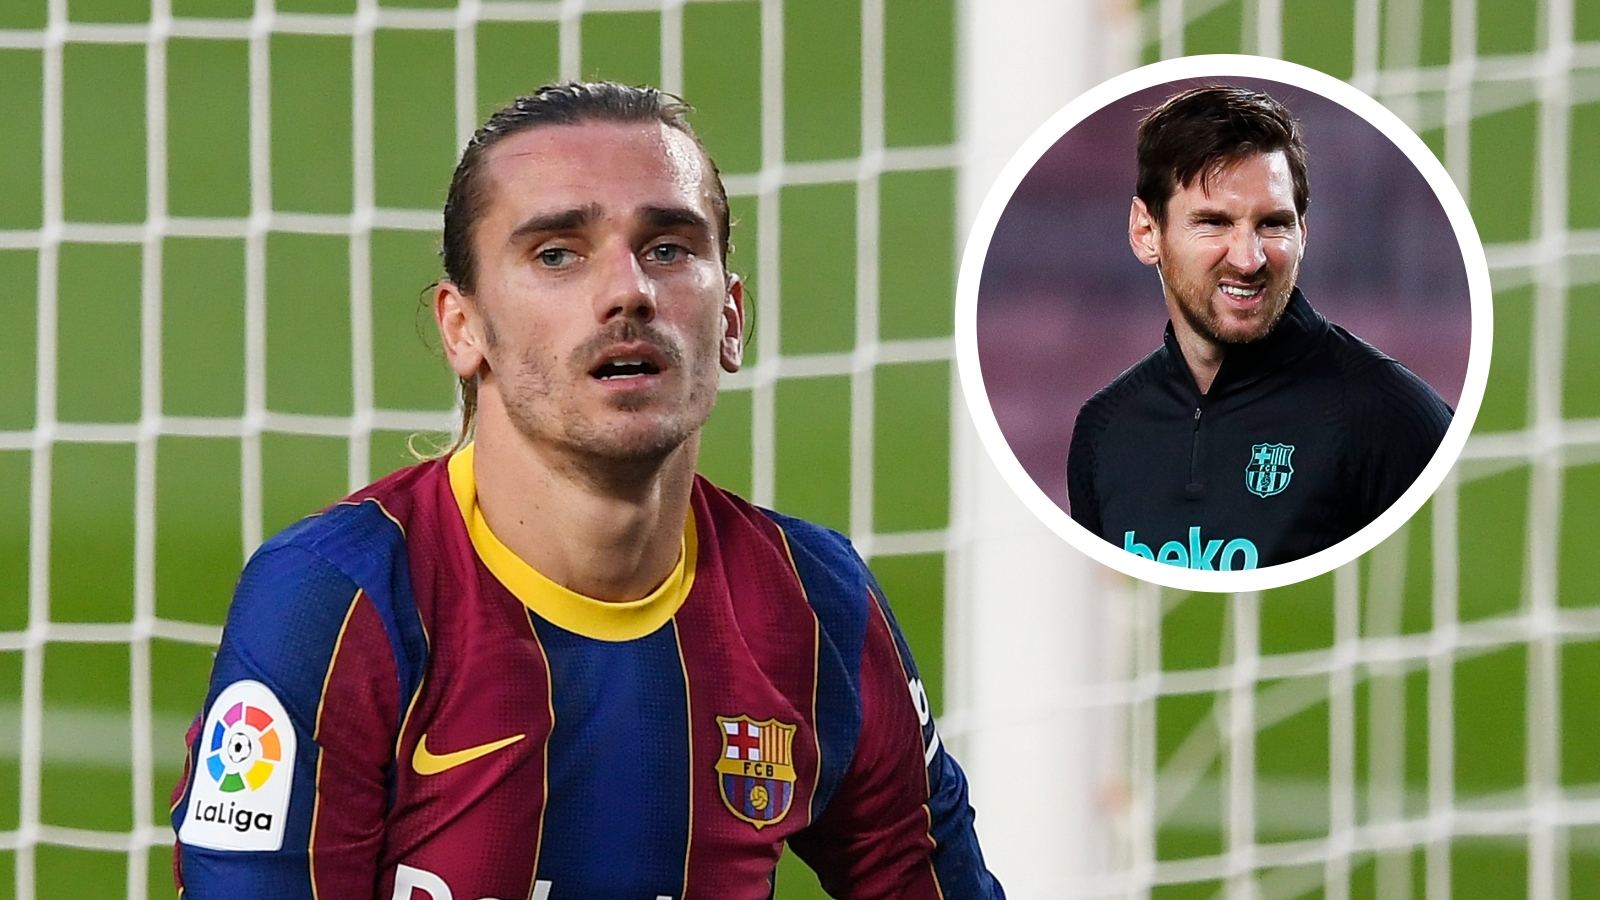 'Griezmann was God with Atletico Madrid but it's Messi first at Barcelona' - Futre questions 2019 transfer